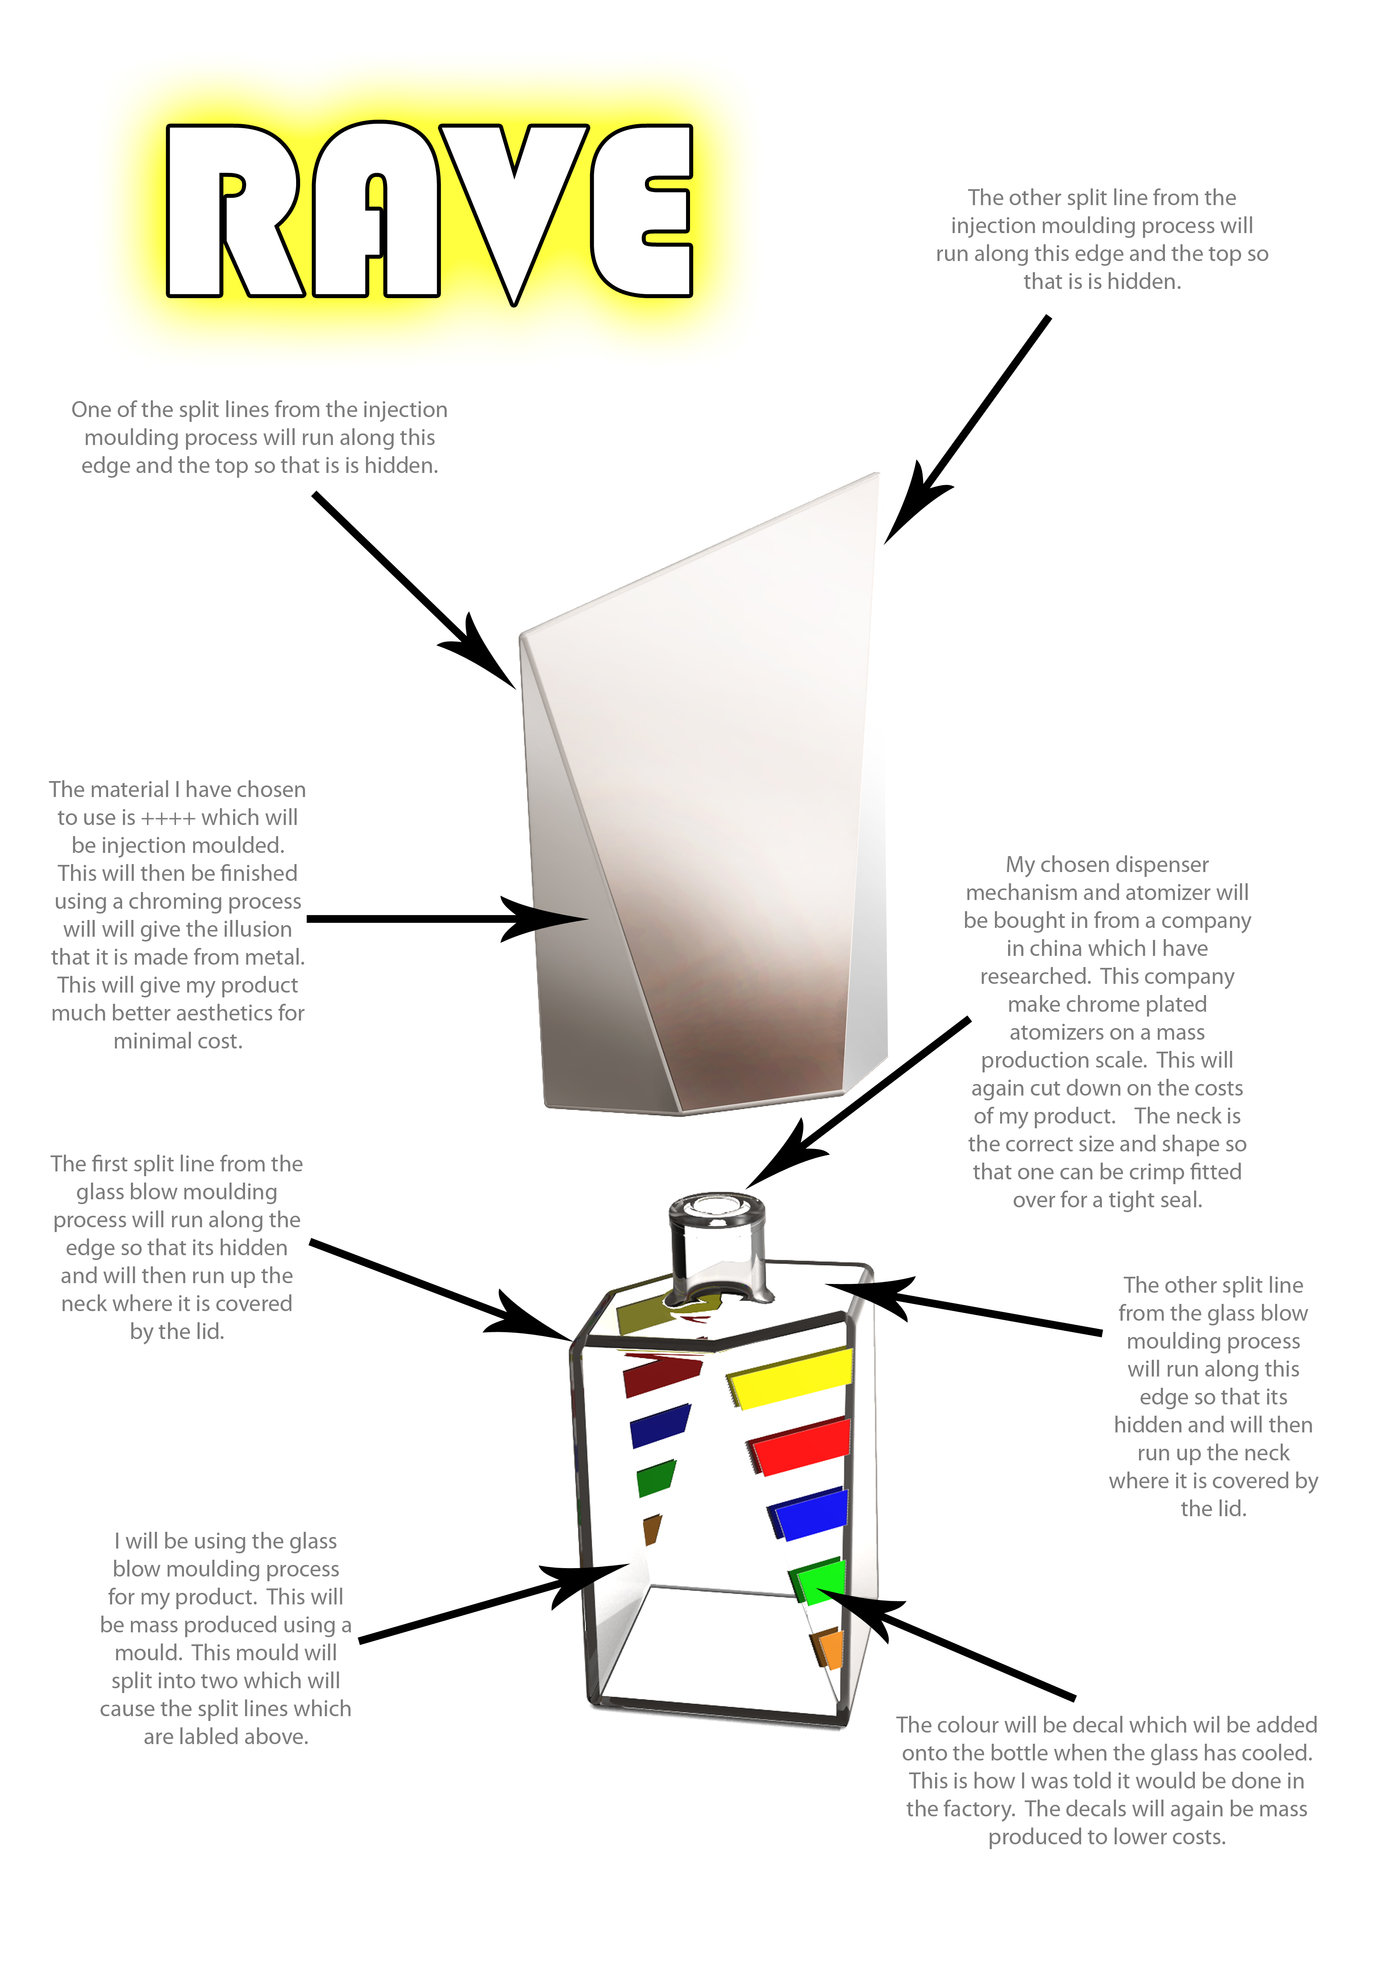 Rave Fragrance For Men By Paul Richardson At What Is Annotated Diagram Exploded View Explaining The Manufacturing Processes And Materials Used